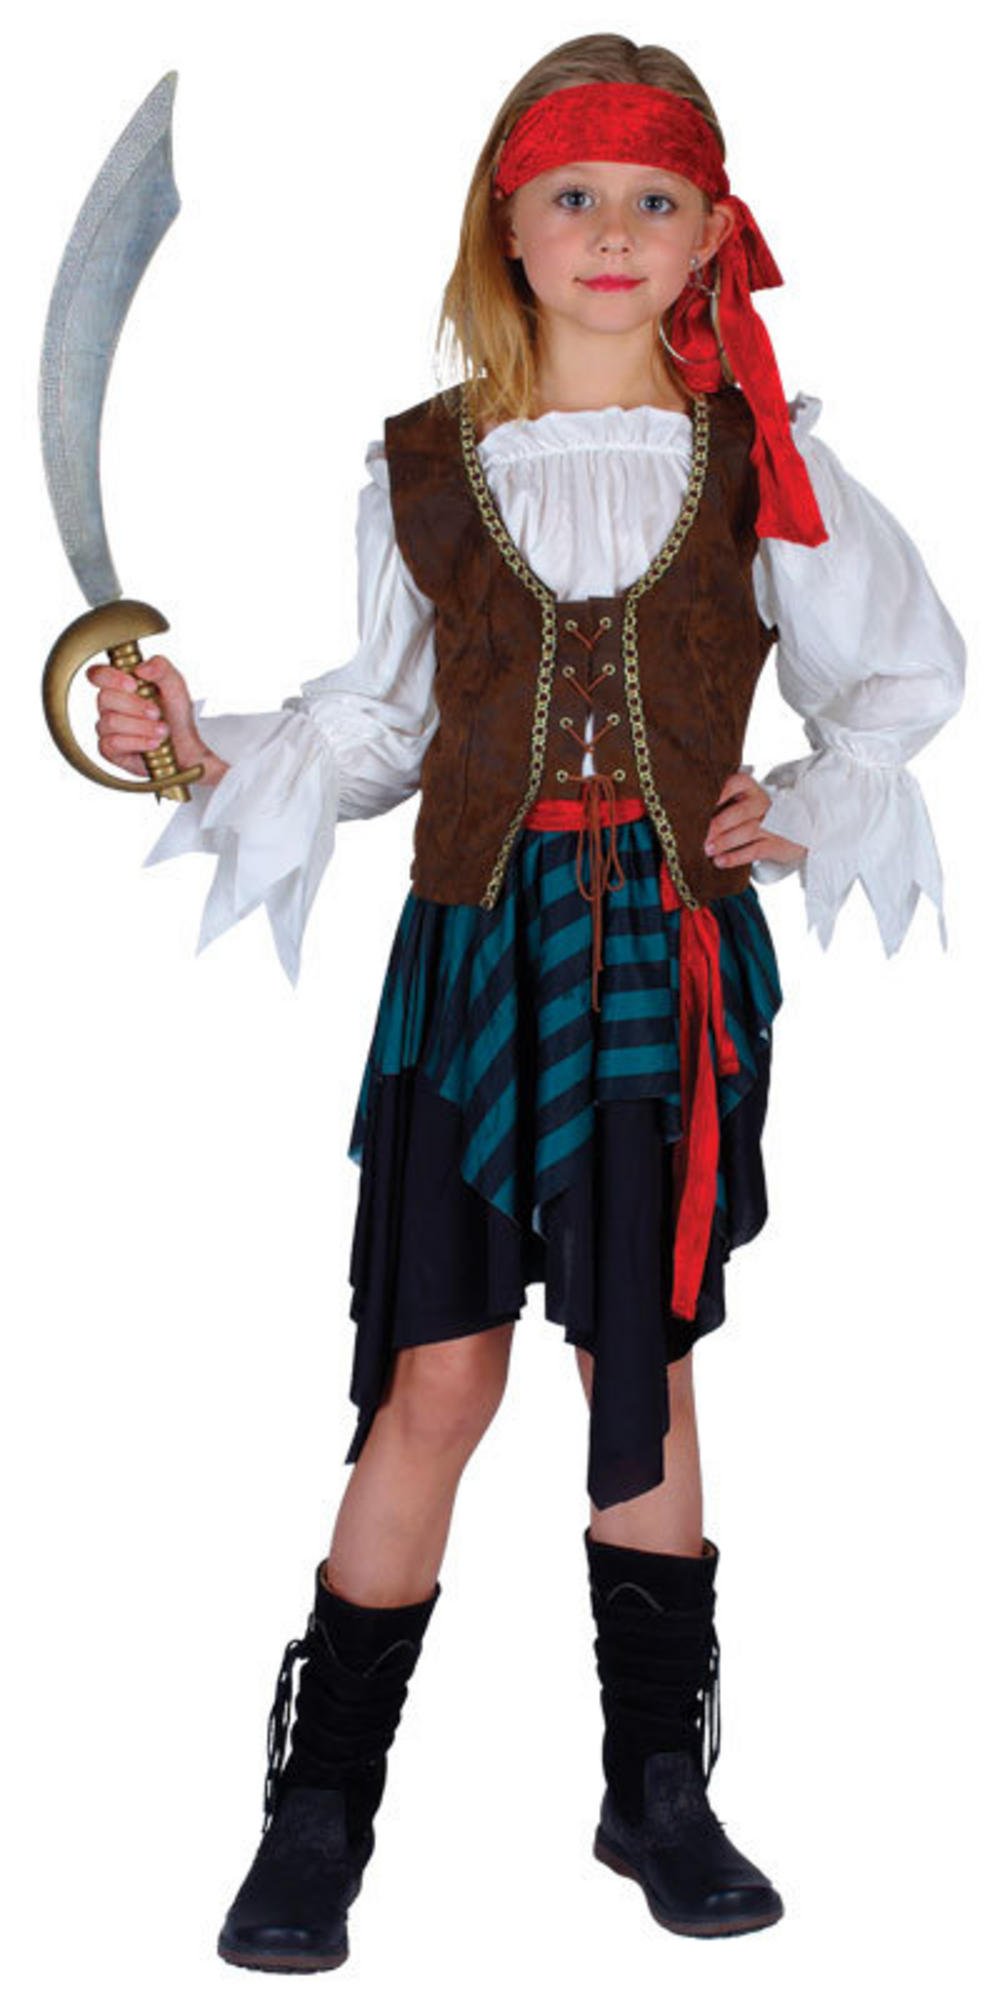 Girls' Caribbean Pirate Costume | Pirate Fancy Dress ... - photo#18